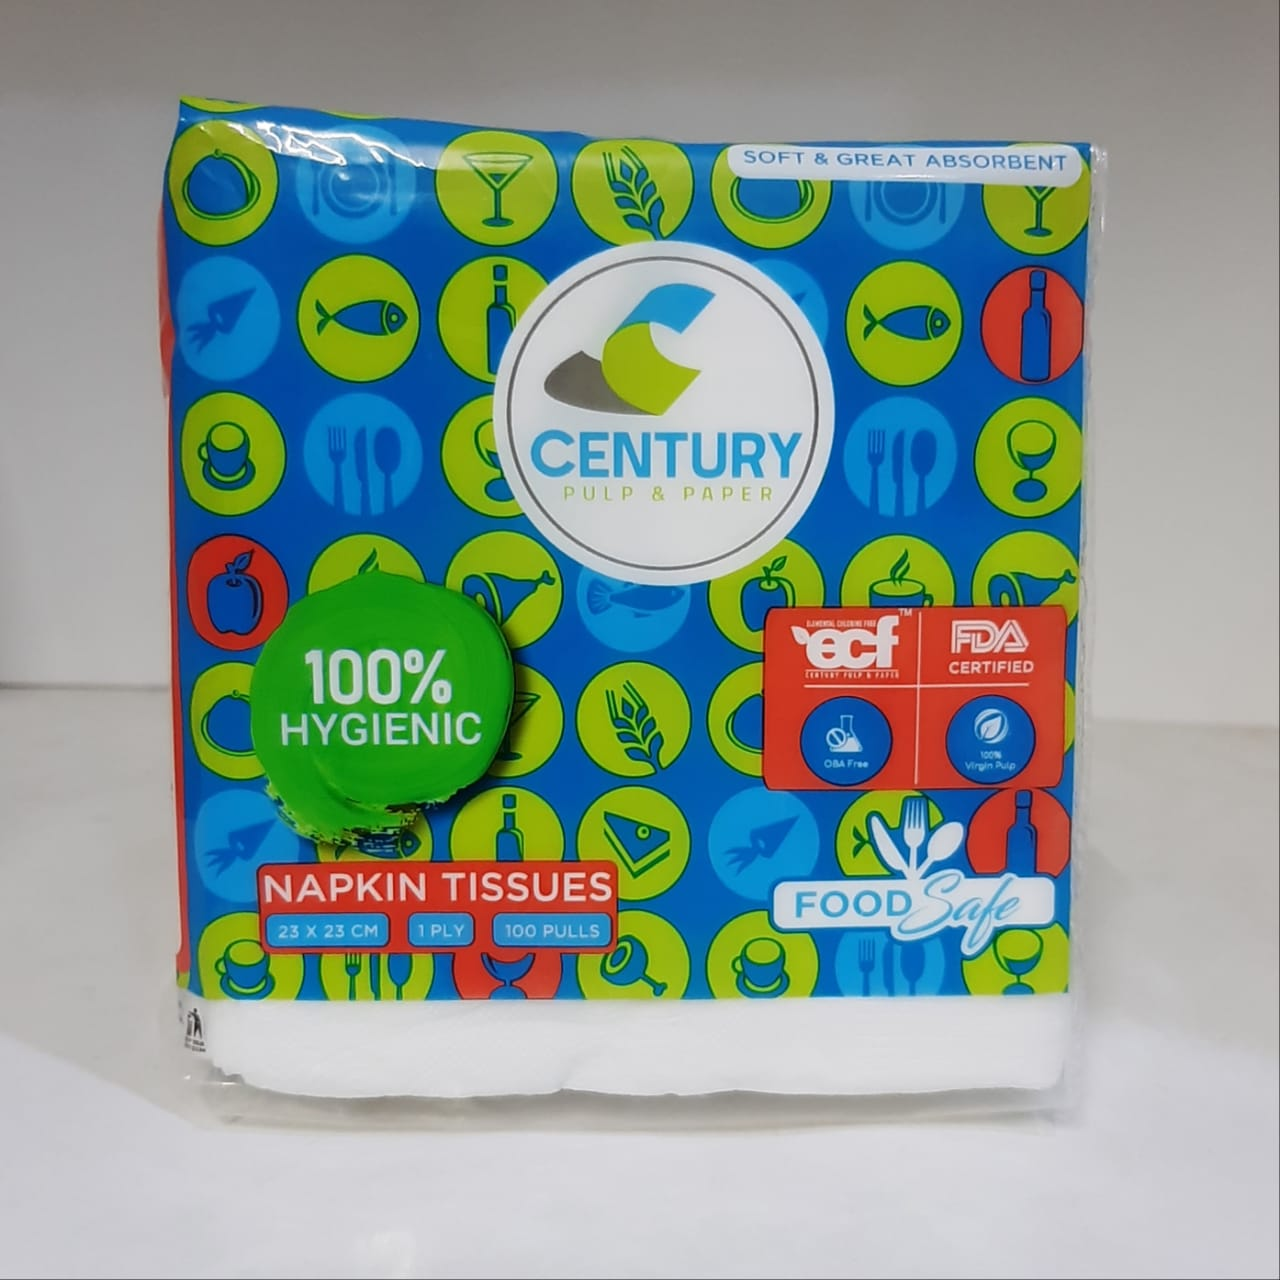 CENTURY NAPKIN TISSUES 1 PLY 23X23 100 PULLS SINGLE PACK